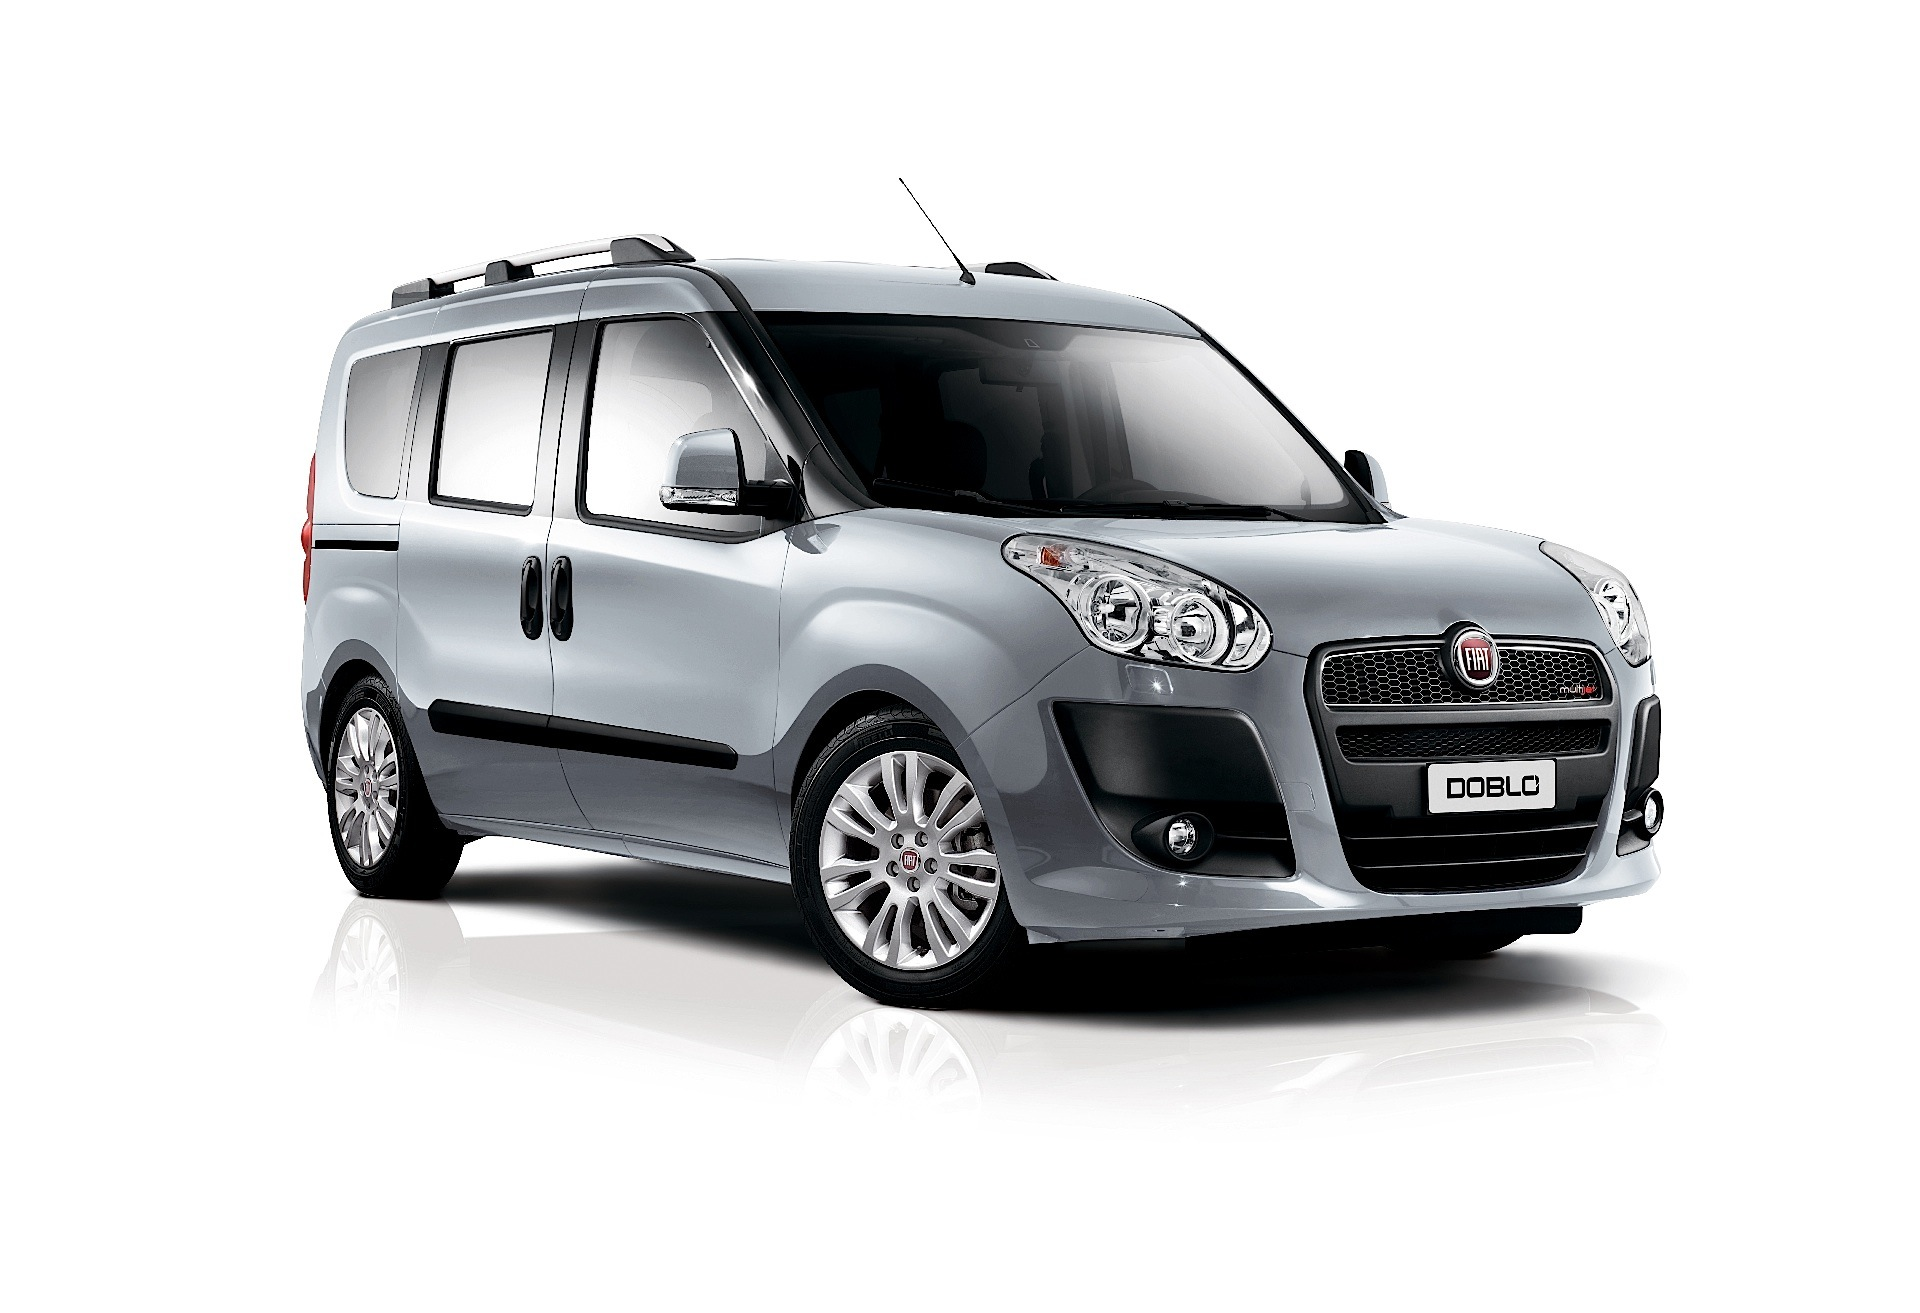 fiat doblo specs photos 2010 2011 2012 2013 2014 2015 2016 2017 2018 autoevolution. Black Bedroom Furniture Sets. Home Design Ideas